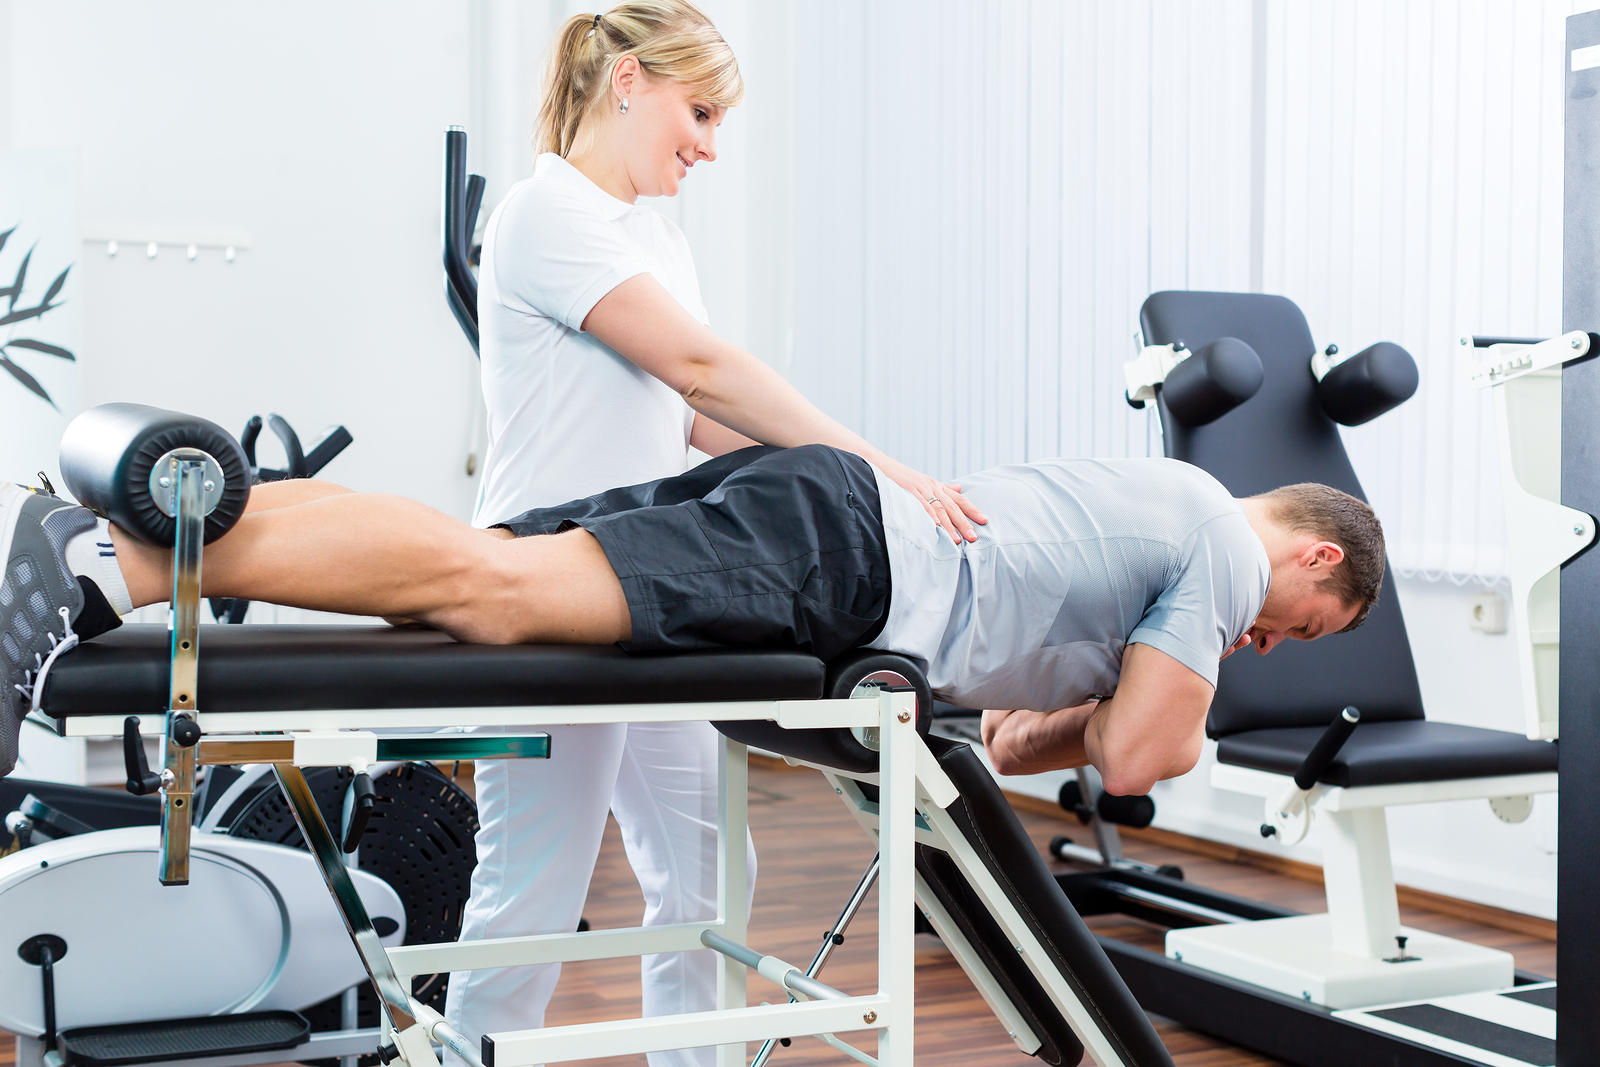 bigstock-Patient-at-the-physiotherapy-d-80711885.jpg